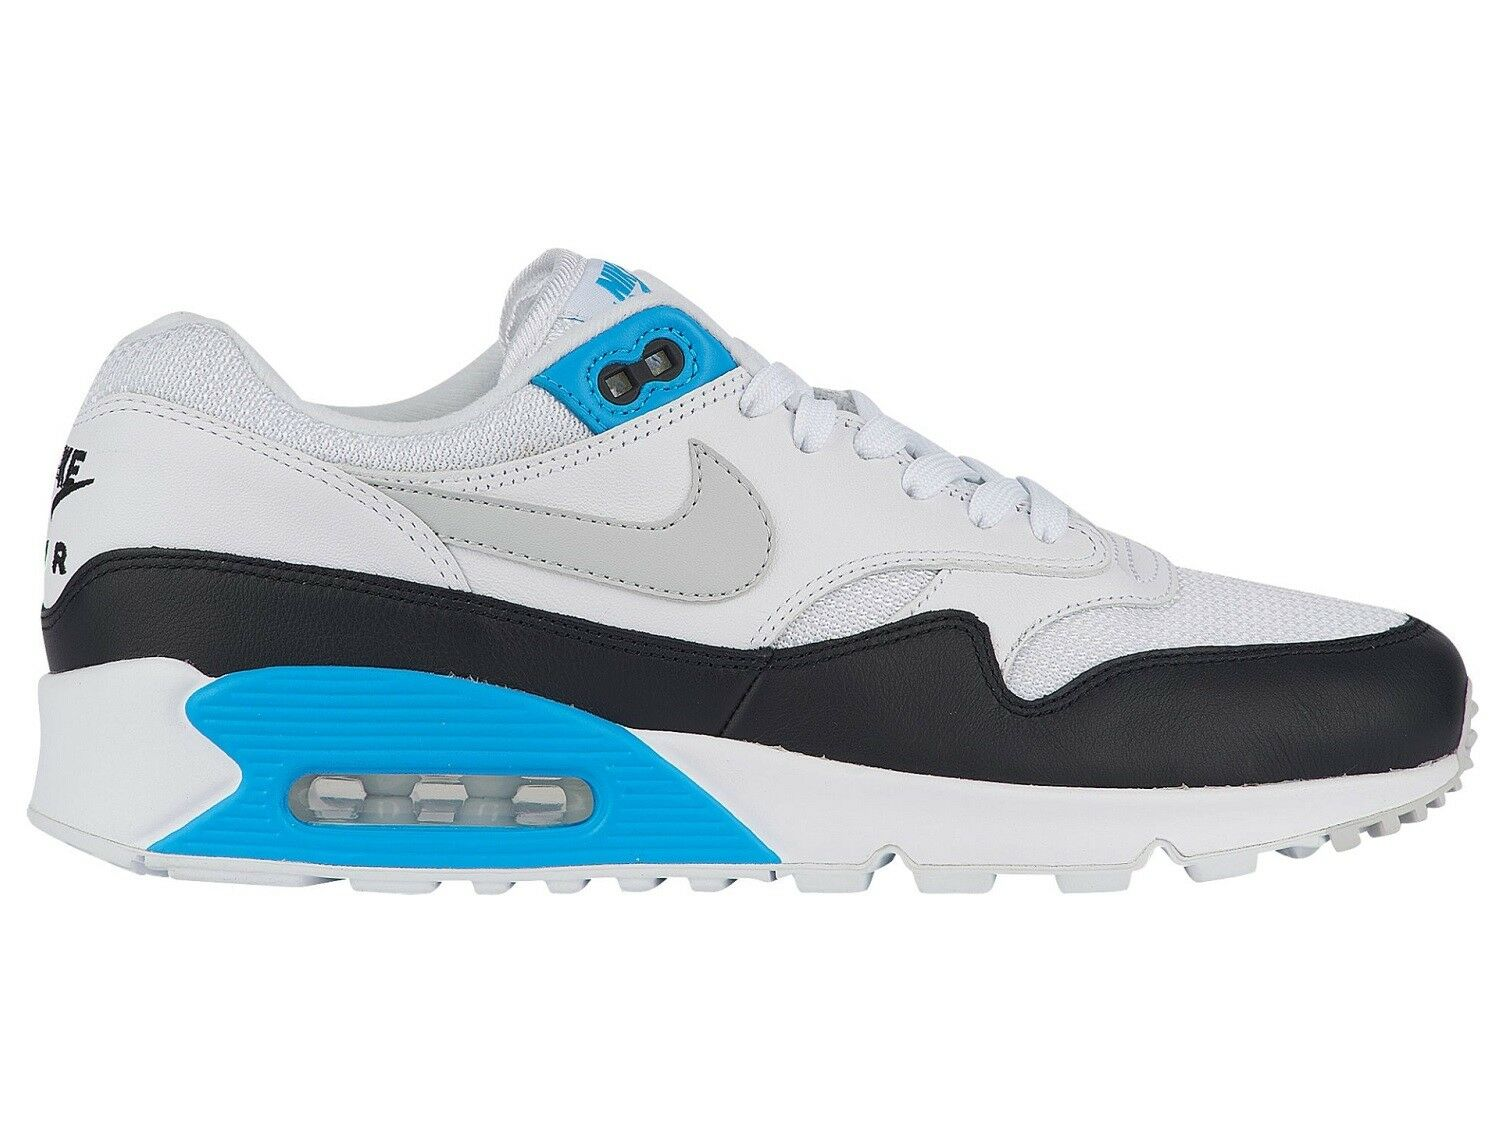 Nike Air Max 90 1 Laser bluee Mens AJ7695-104 White White White Black Running shoes Size 9 9bb399